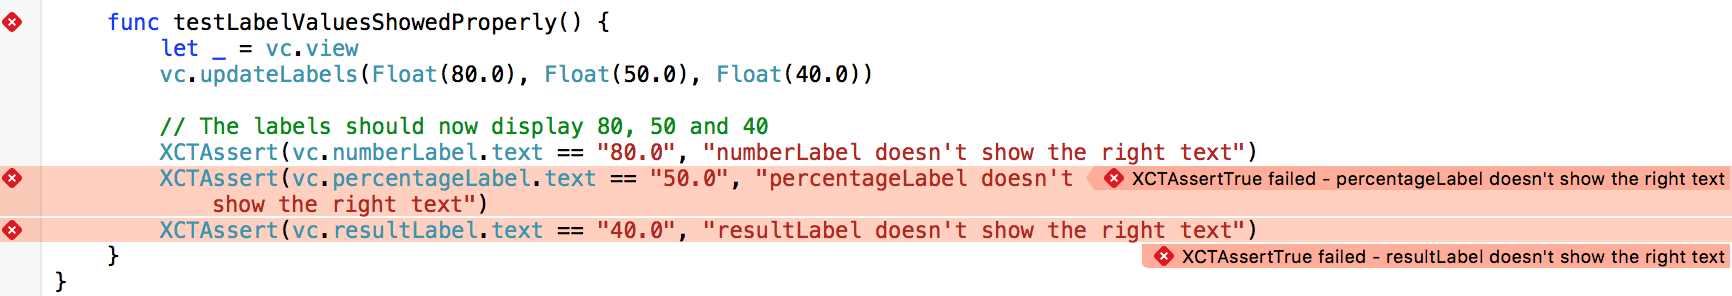 unit-test-demo-fail